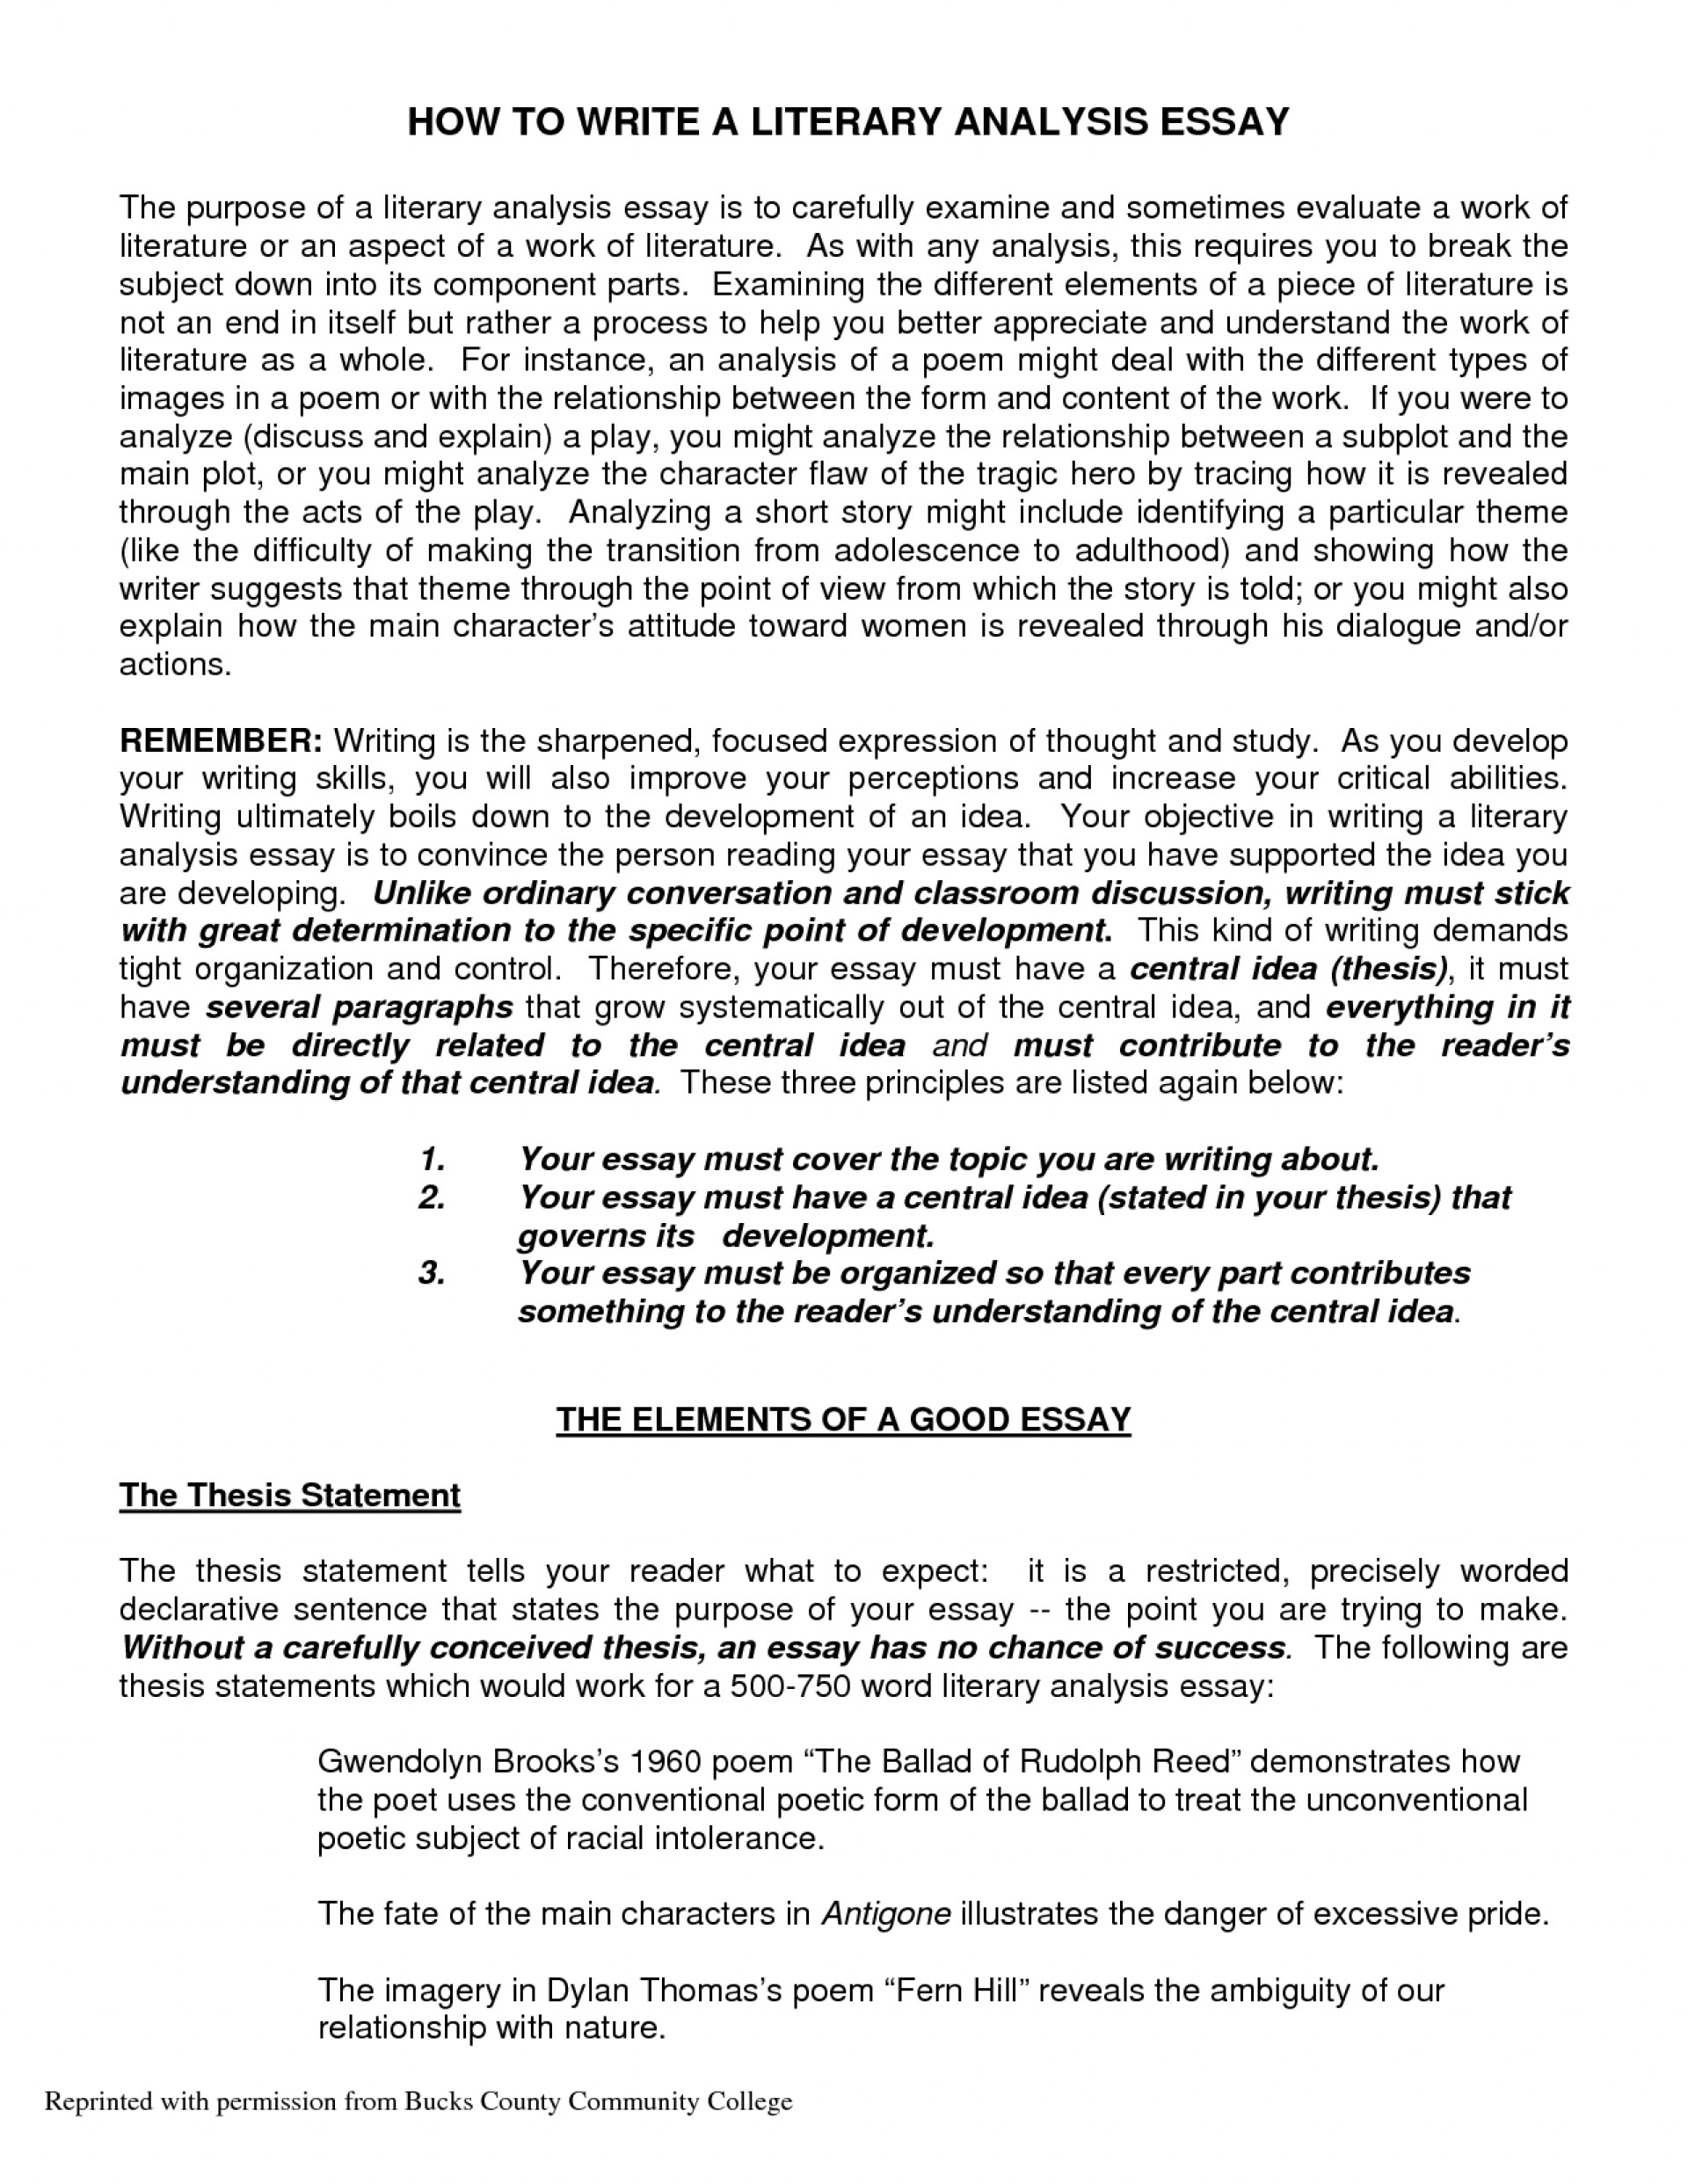 003 Awesome Collection Of Ideas Example Literary Essaylso Format Sample Huanyii Fancy Critical How To Write Formidable A Essay Good English Literature Introduction Conclusion Grade 4 1920